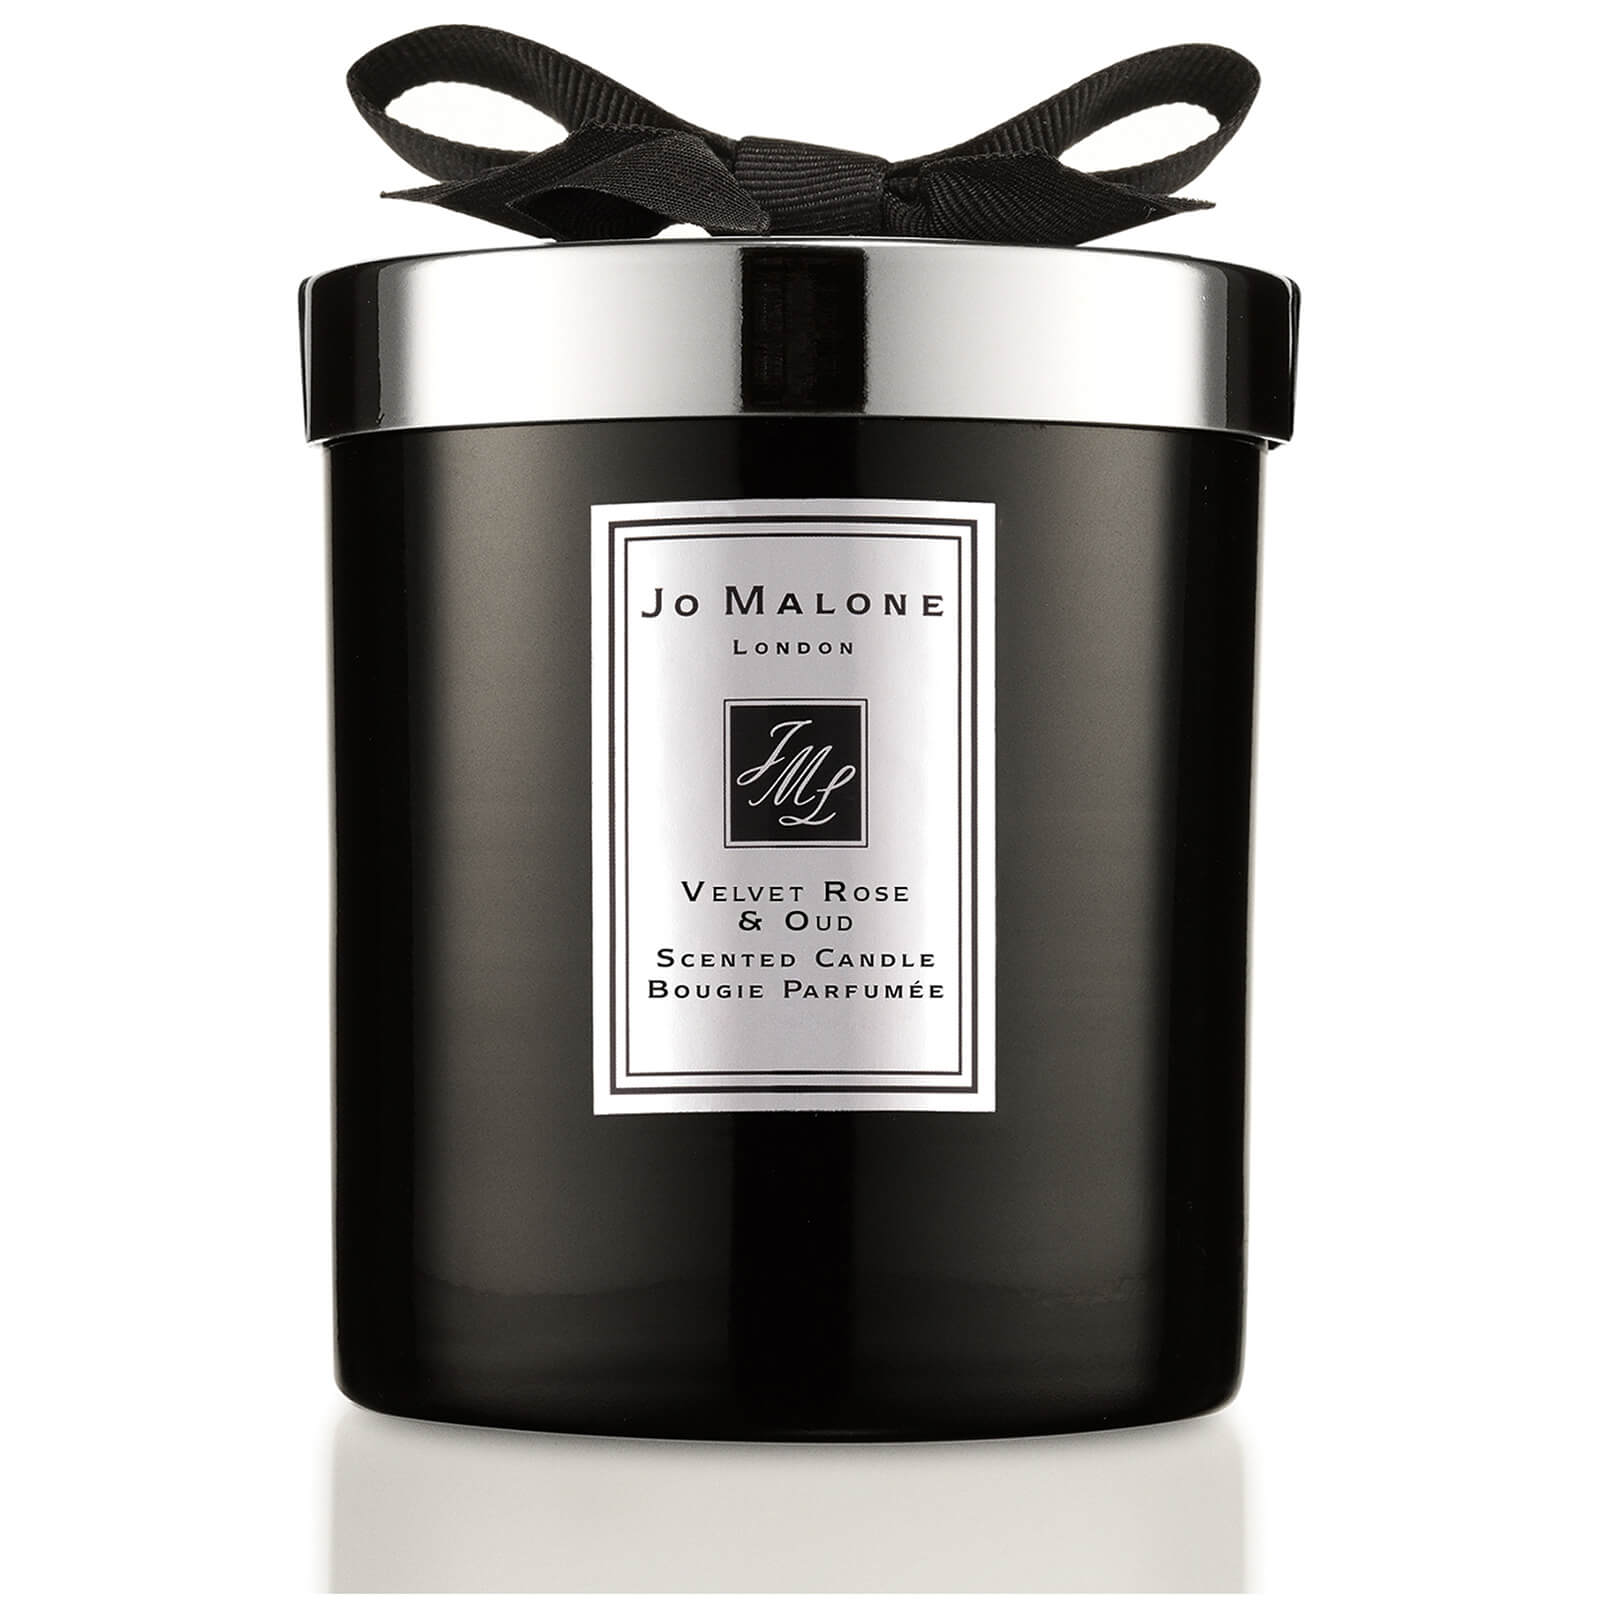 Jo Malone London Cologne Intense Velvet Rose and Oud Home Candle 200g